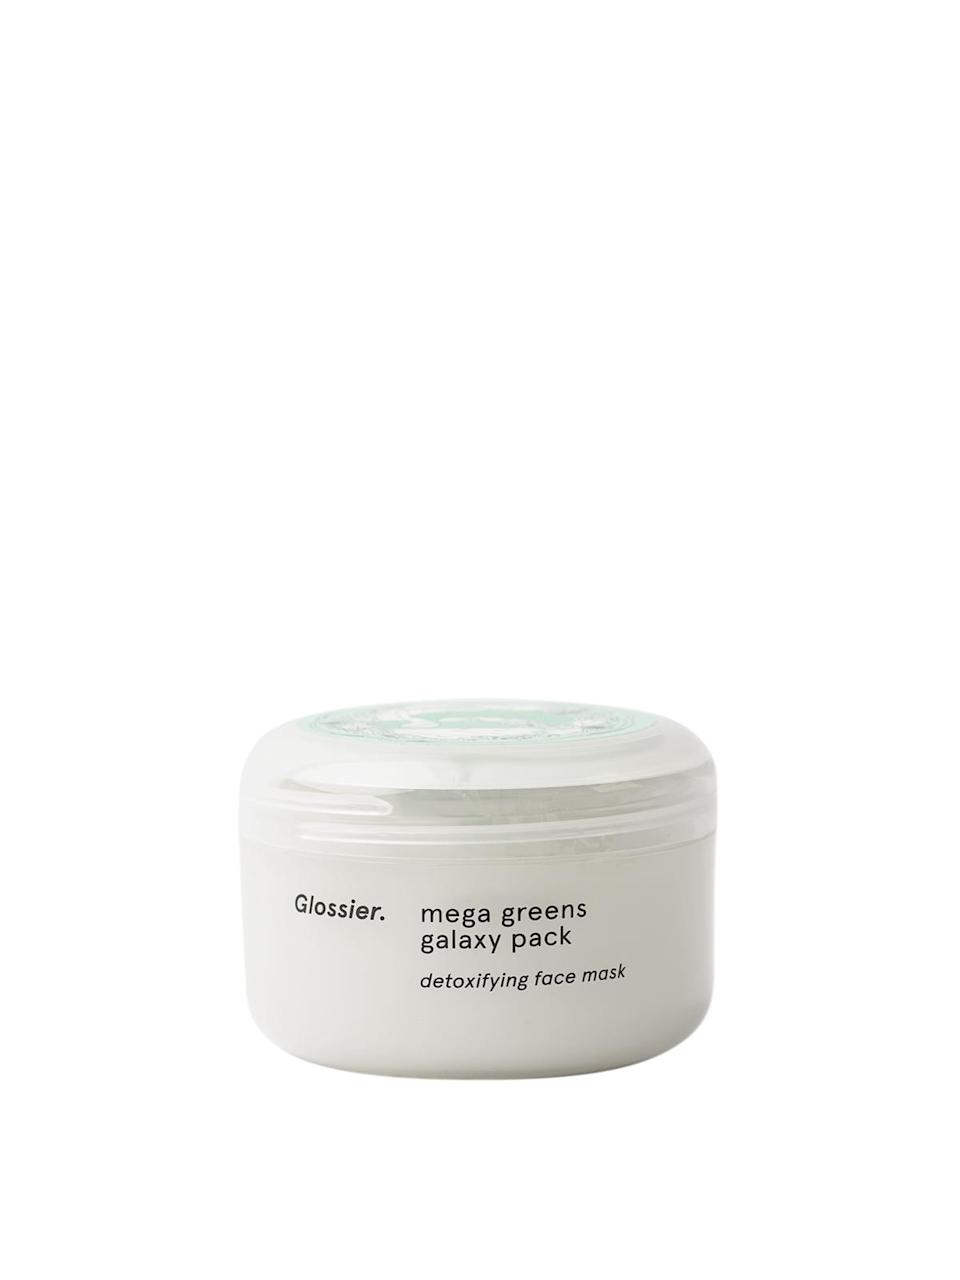 """<h3>Mega Greens Galaxy Pack<br></h3> <br>This traditional kaolin-clay face mask is boosted with nourishing ingredients like rosemary, pomegranate, spinach, and parsley — kind of like brunch at Urth Caffé, only for your face. It leaves our skin feeling soft and clear, but still well-hydrated, which is more than can be said for most pore-purifying clay masks.<br><br><strong>Glossier</strong> Mega Greens Galaxy Pack, $, available at <a href=""""https://go.skimresources.com/?id=30283X879131&url=https%3A%2F%2Fglossier.sjv.io%2F5DB33"""" rel=""""nofollow noopener"""" target=""""_blank"""" data-ylk=""""slk:Glossier"""" class=""""link rapid-noclick-resp"""">Glossier</a><br>"""